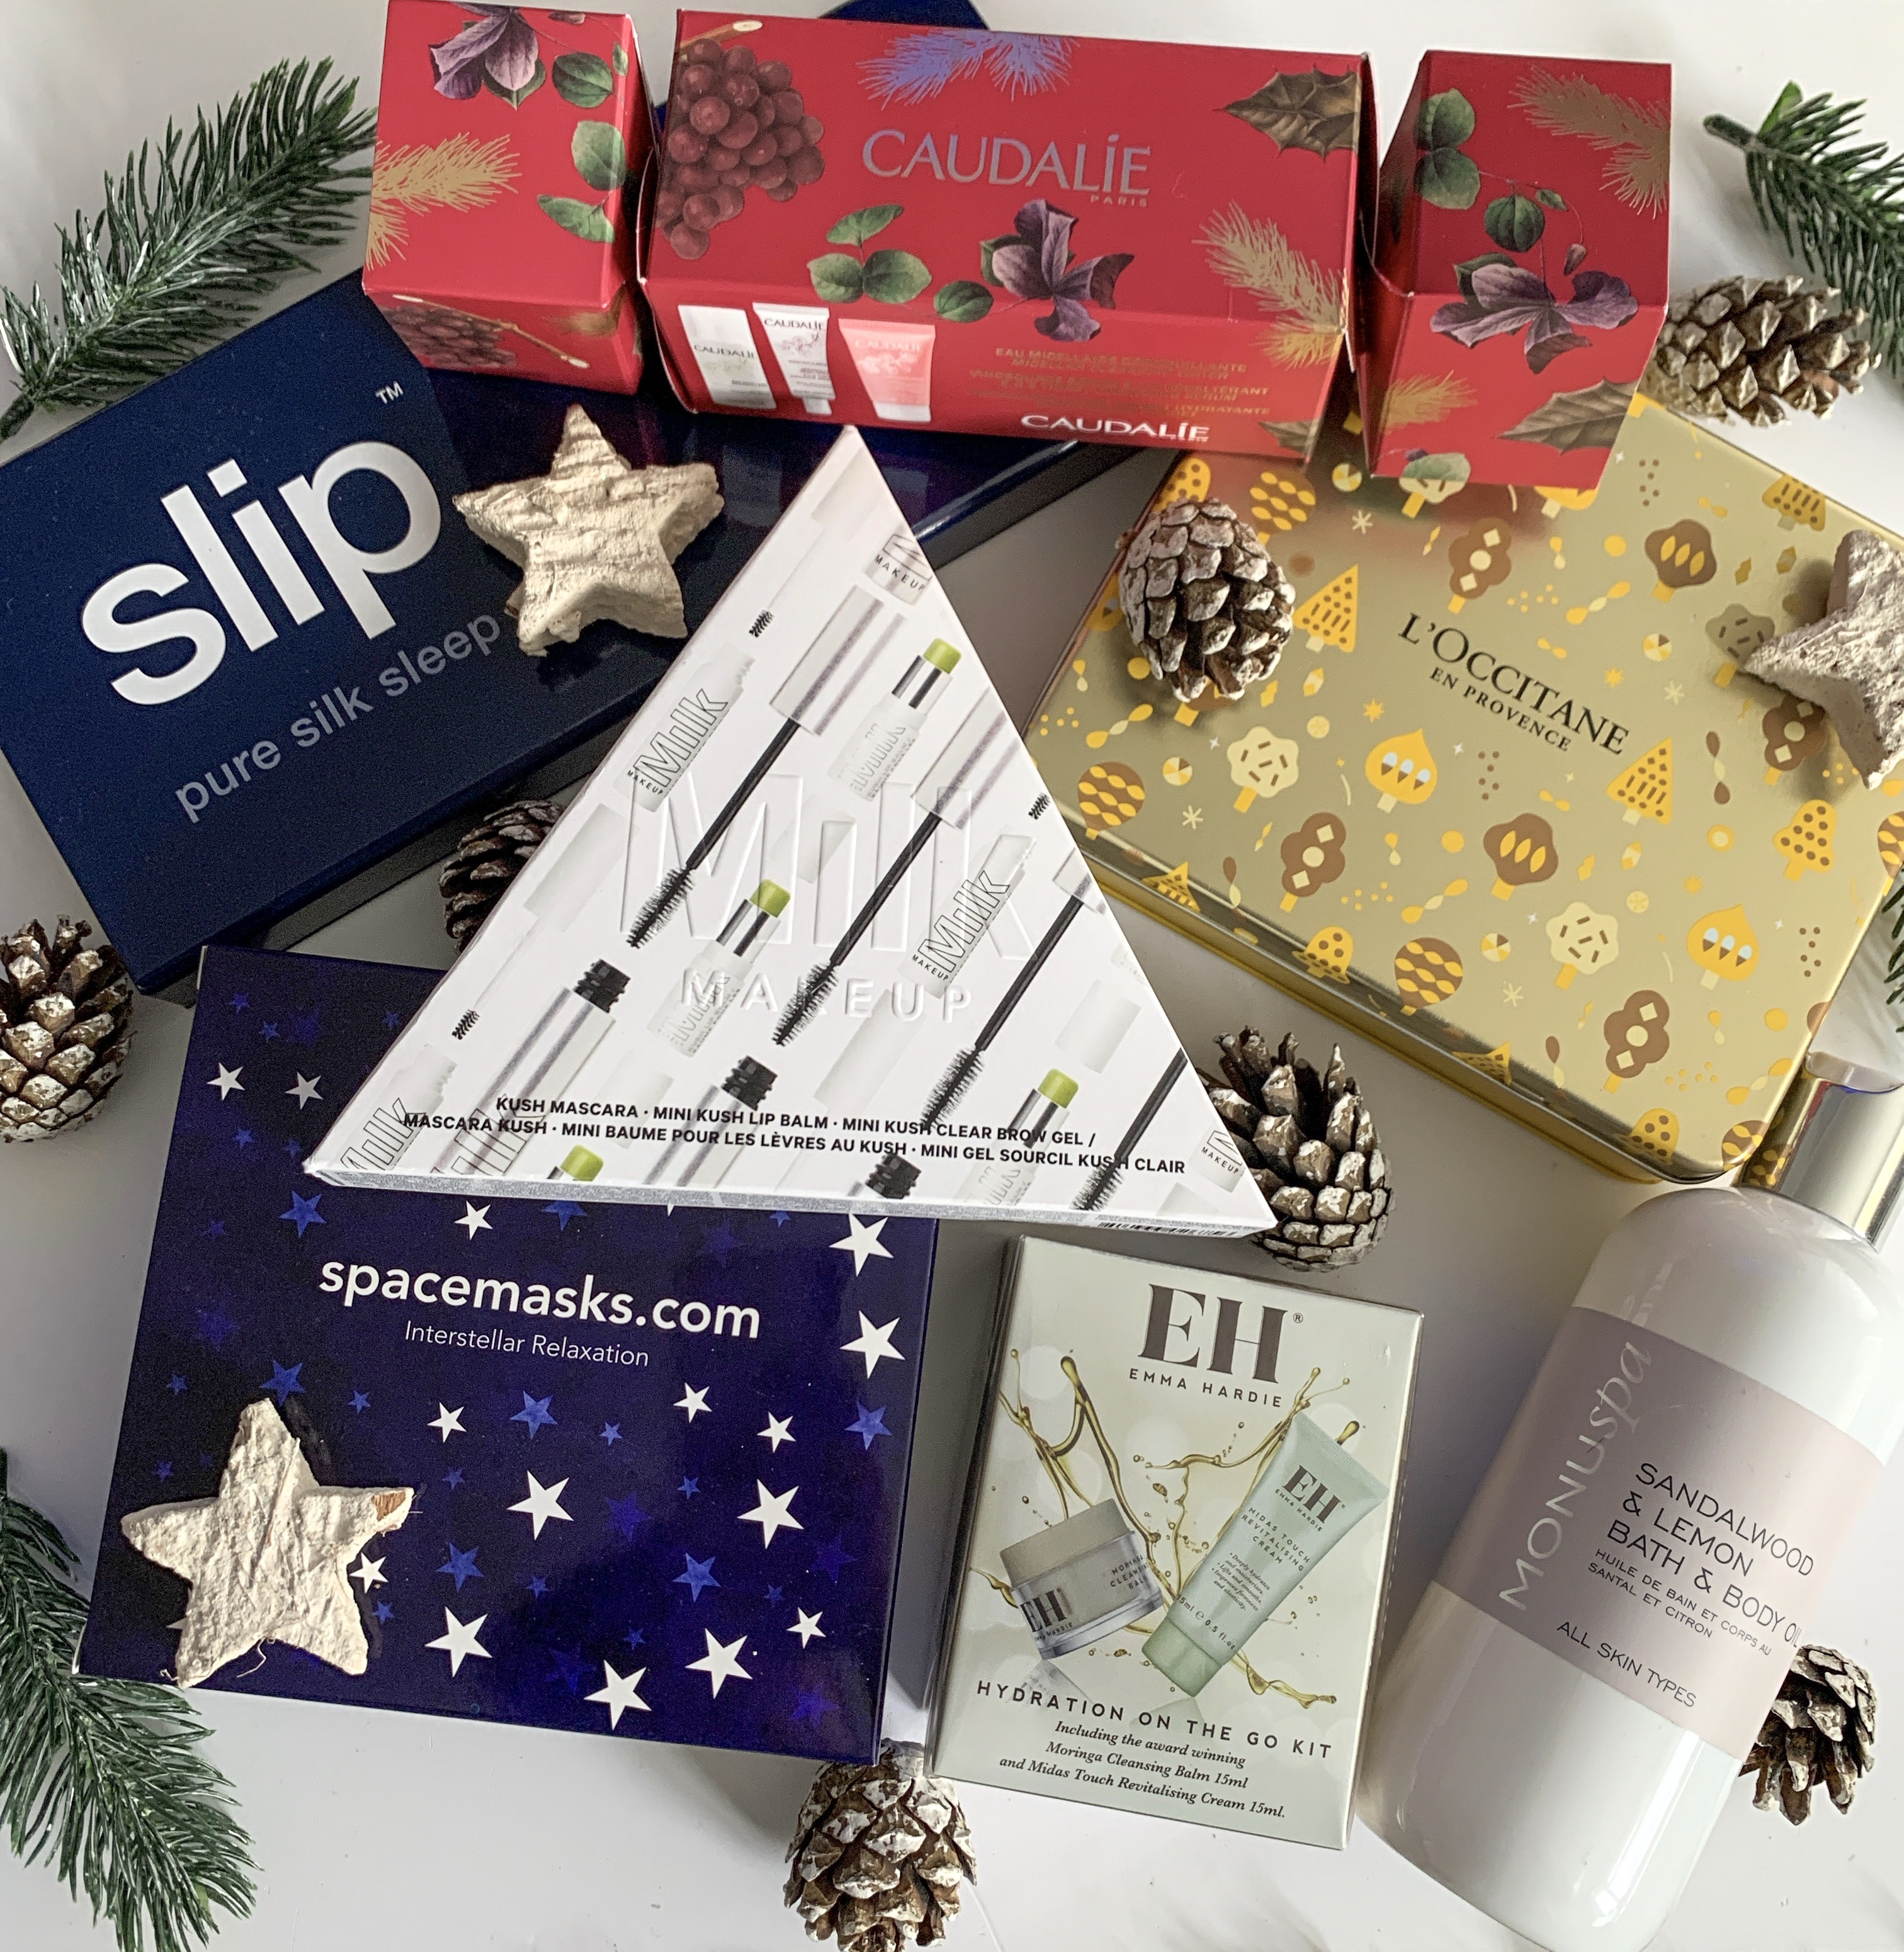 Nicola S Christmas Beauty Gift Guide 2019 Affordable Stocking Fillers For Everyone On Your List